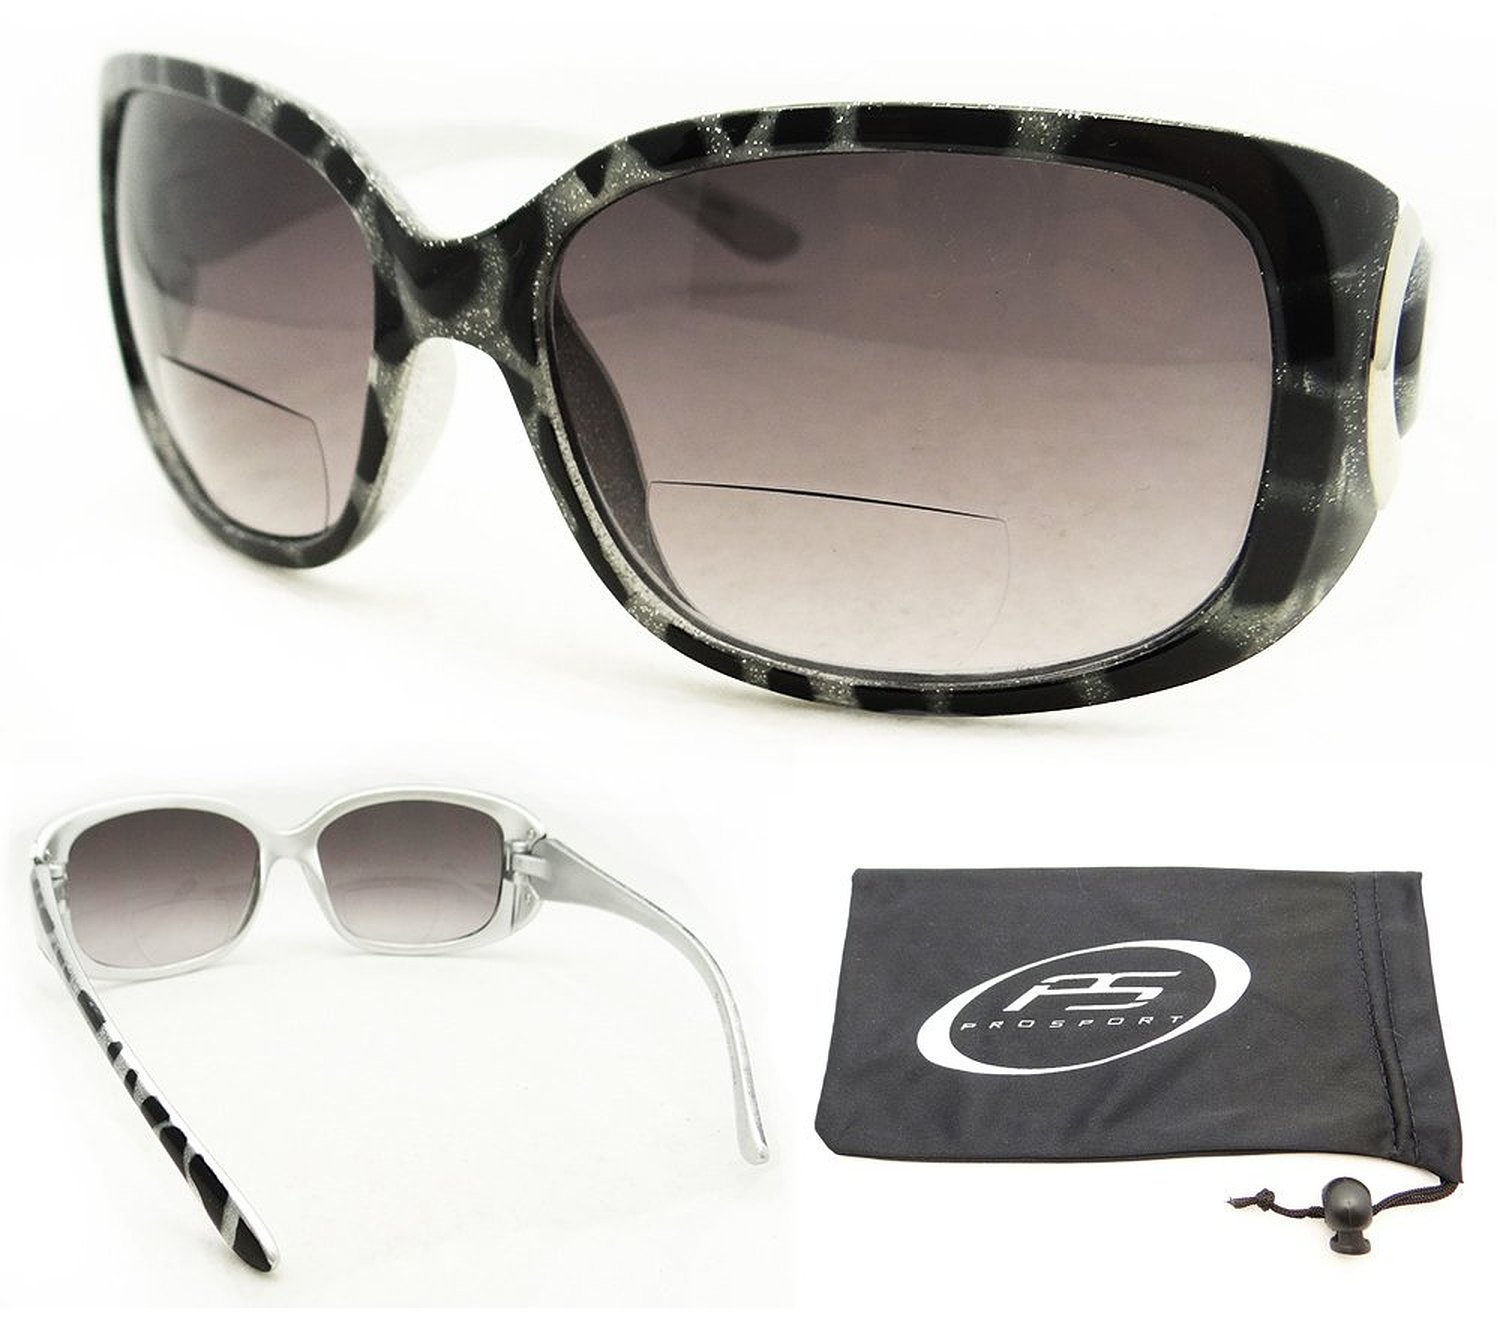 Trendy Bifocal Sunglasses for Women with Sexy Animal Pattern Frames and Chrome Accent. Free Microfiber Cleaning Case